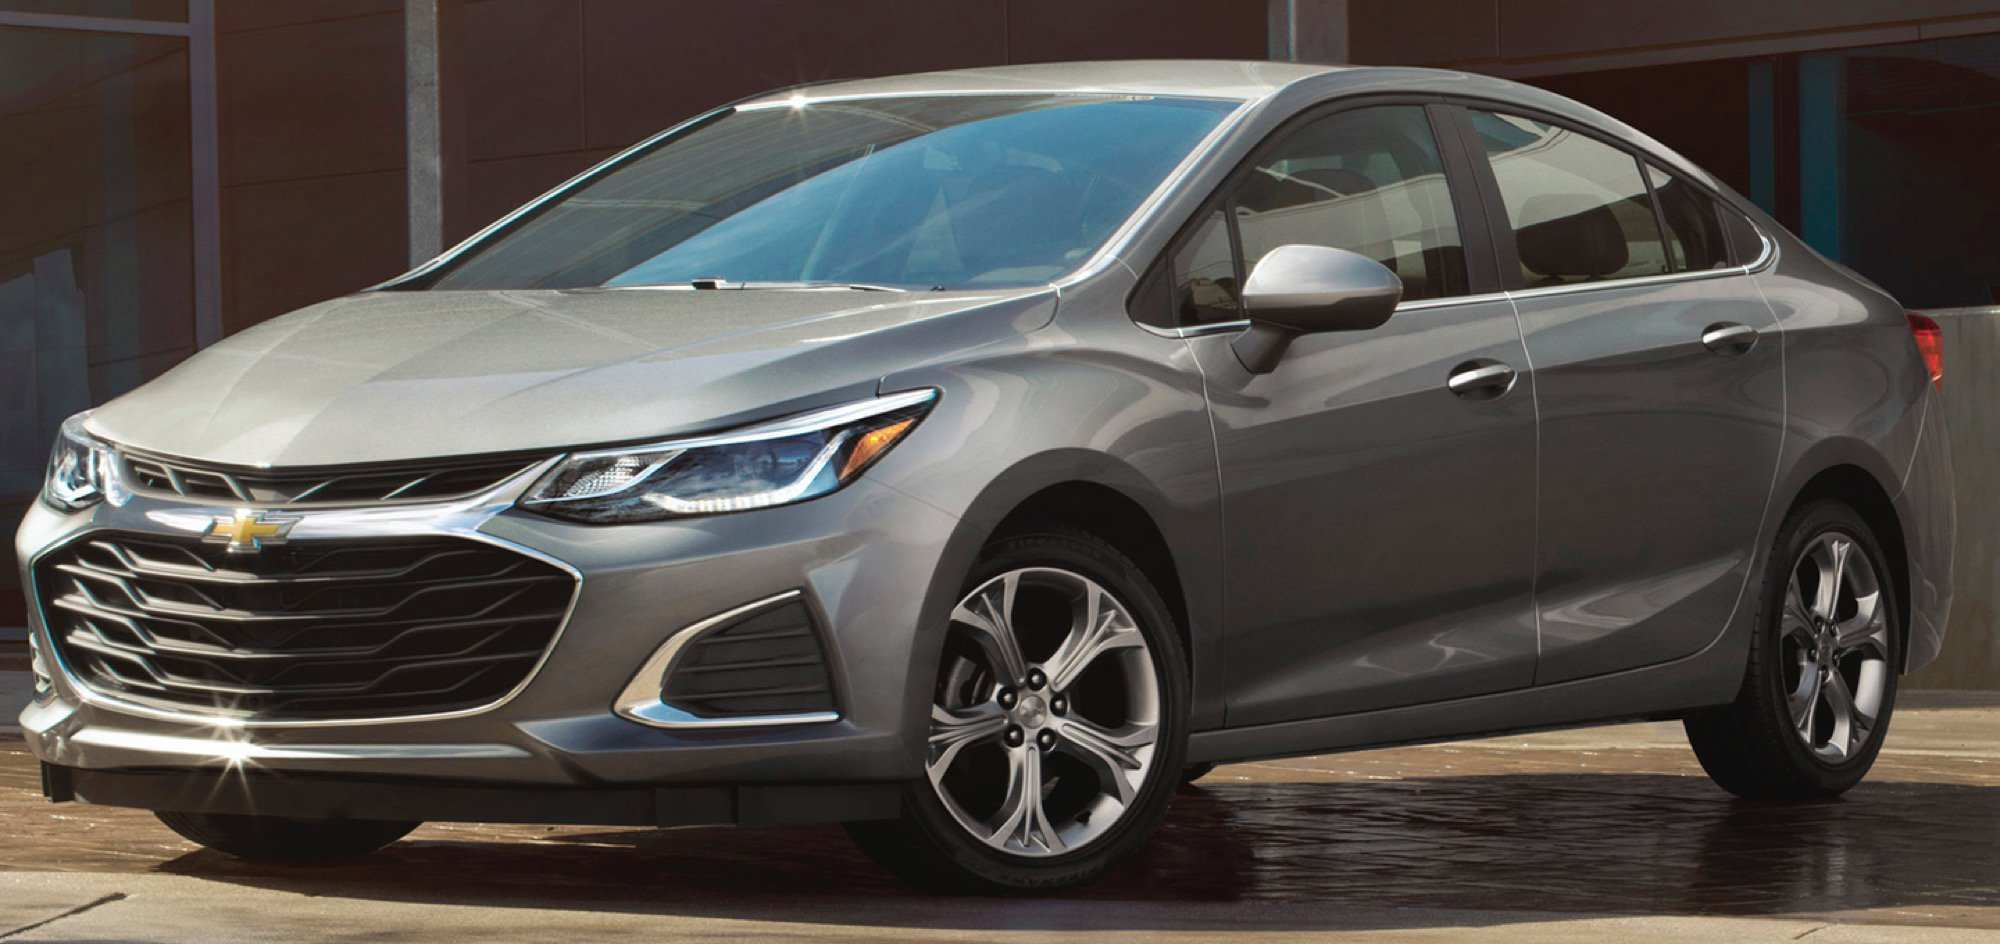 68 New 2020 Chevy Cruze Price And Release Date